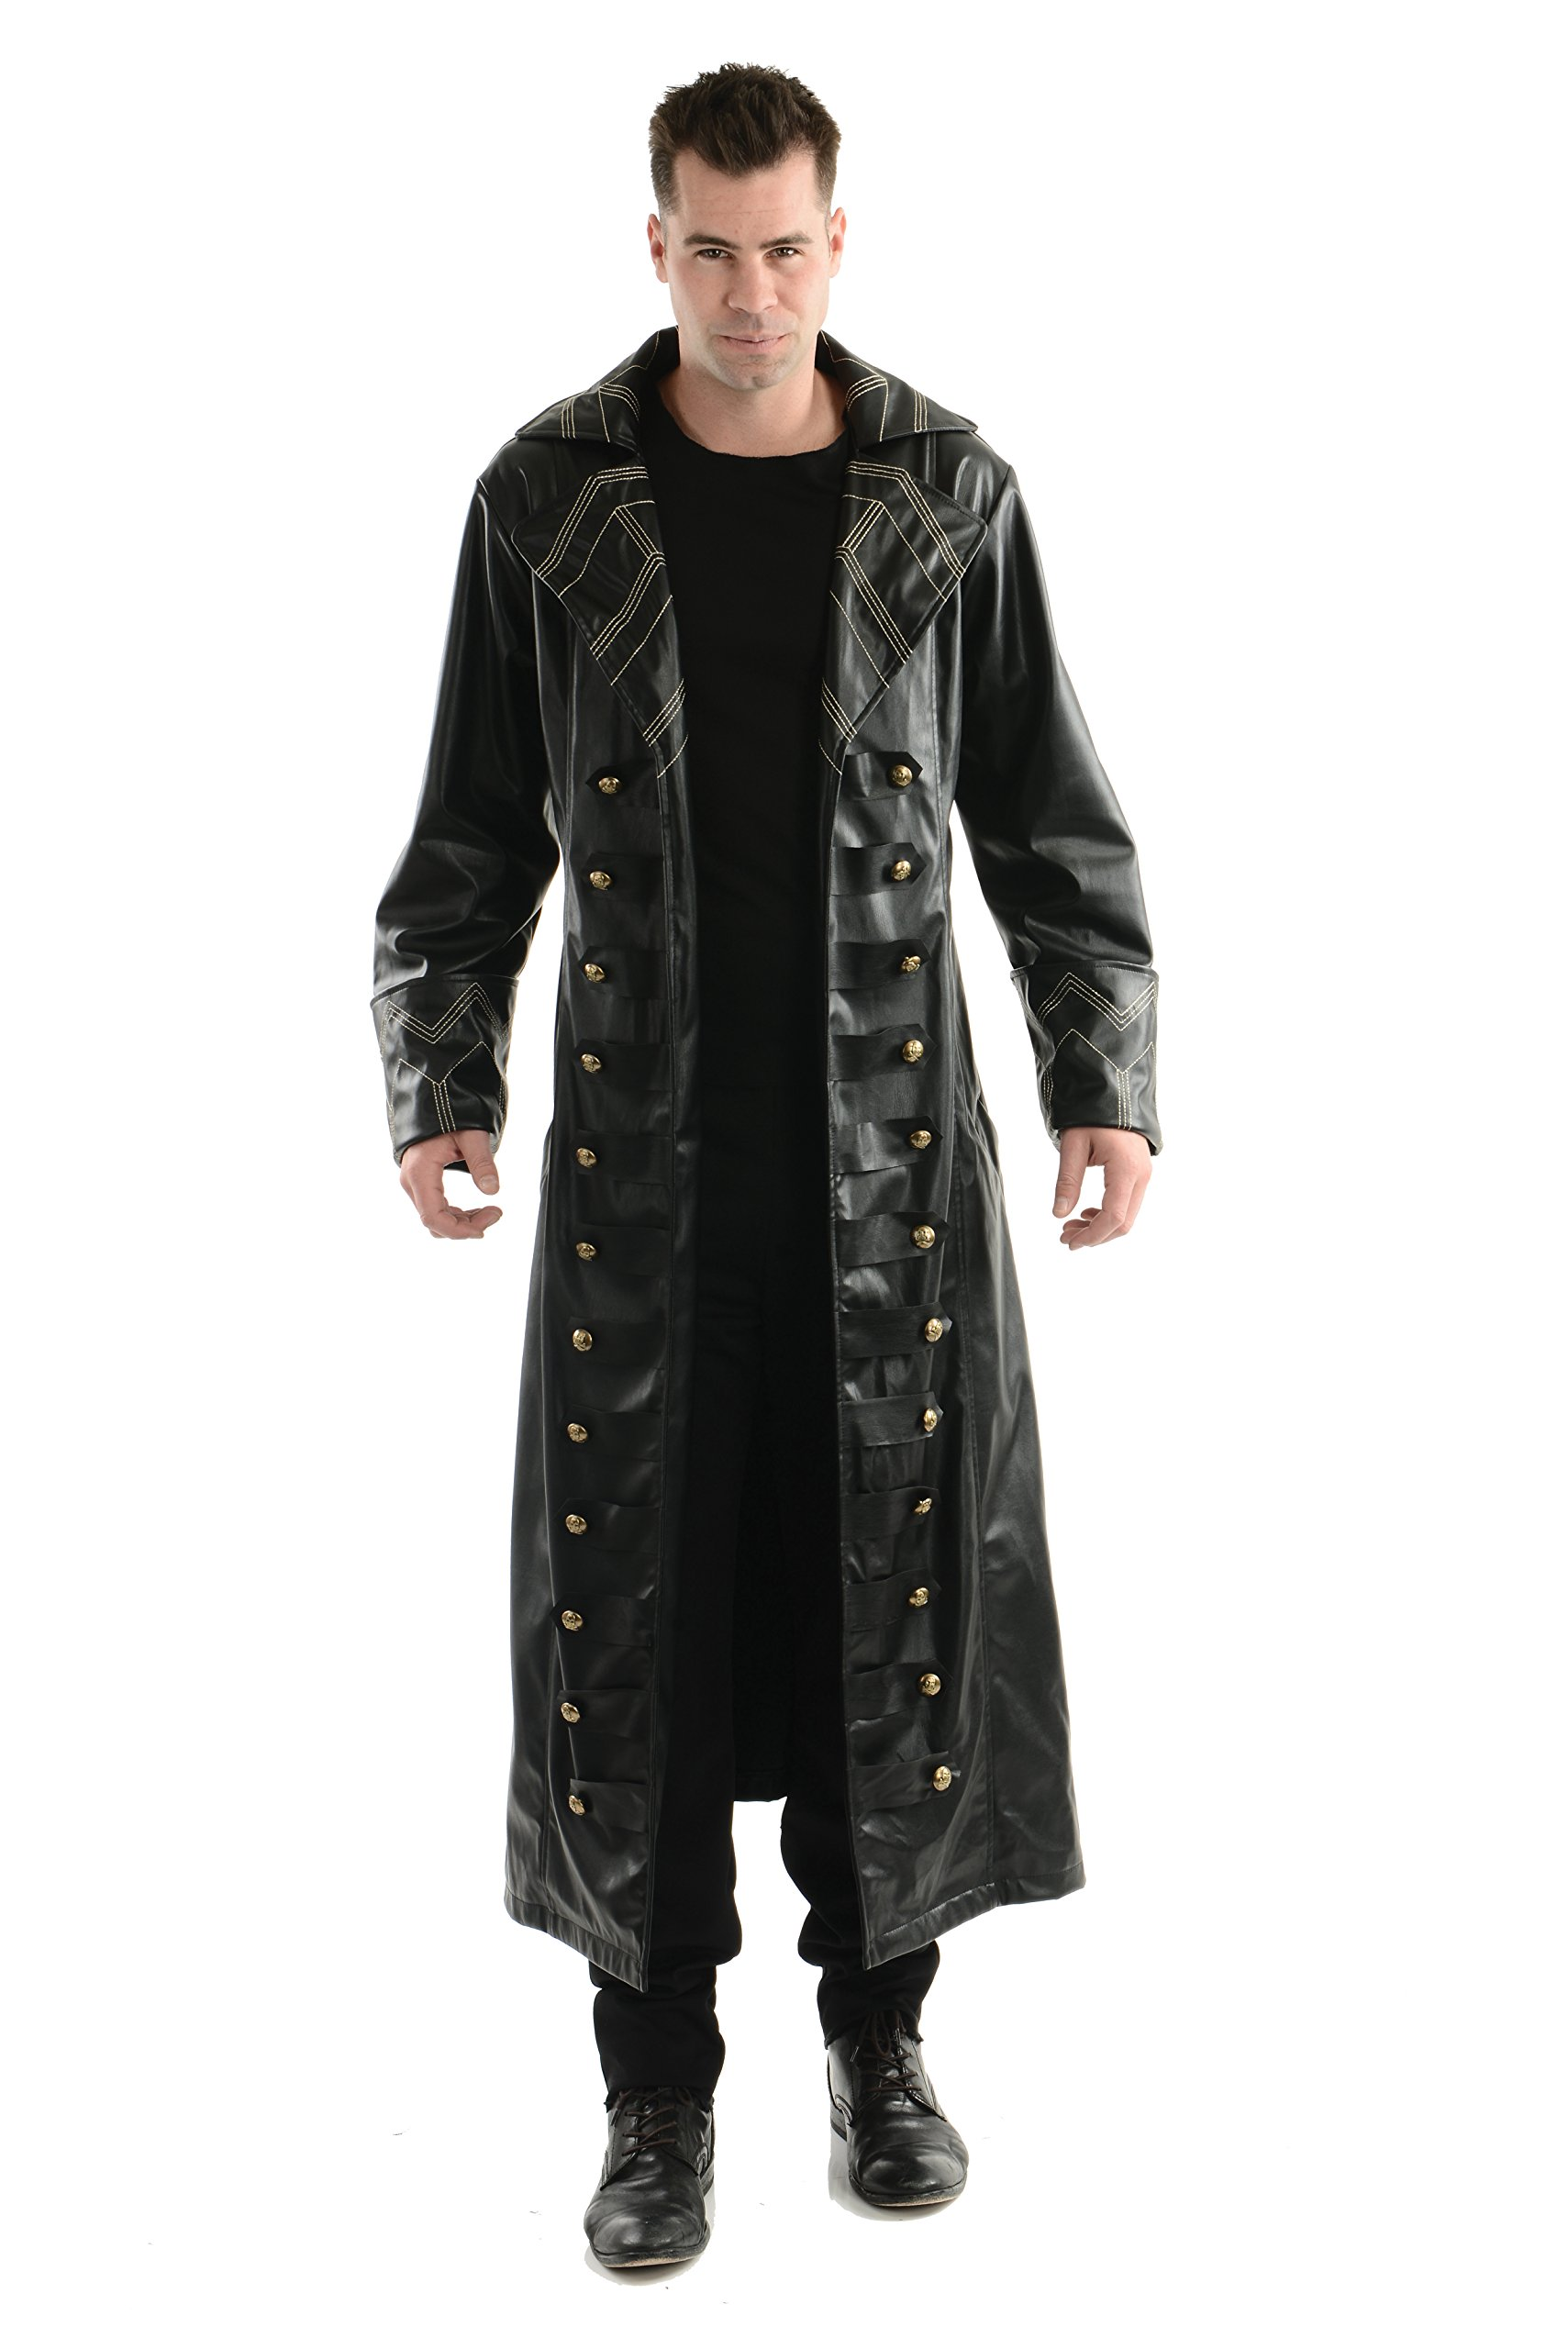 Charades Men's Pirate Trench Coat, Black, Medium